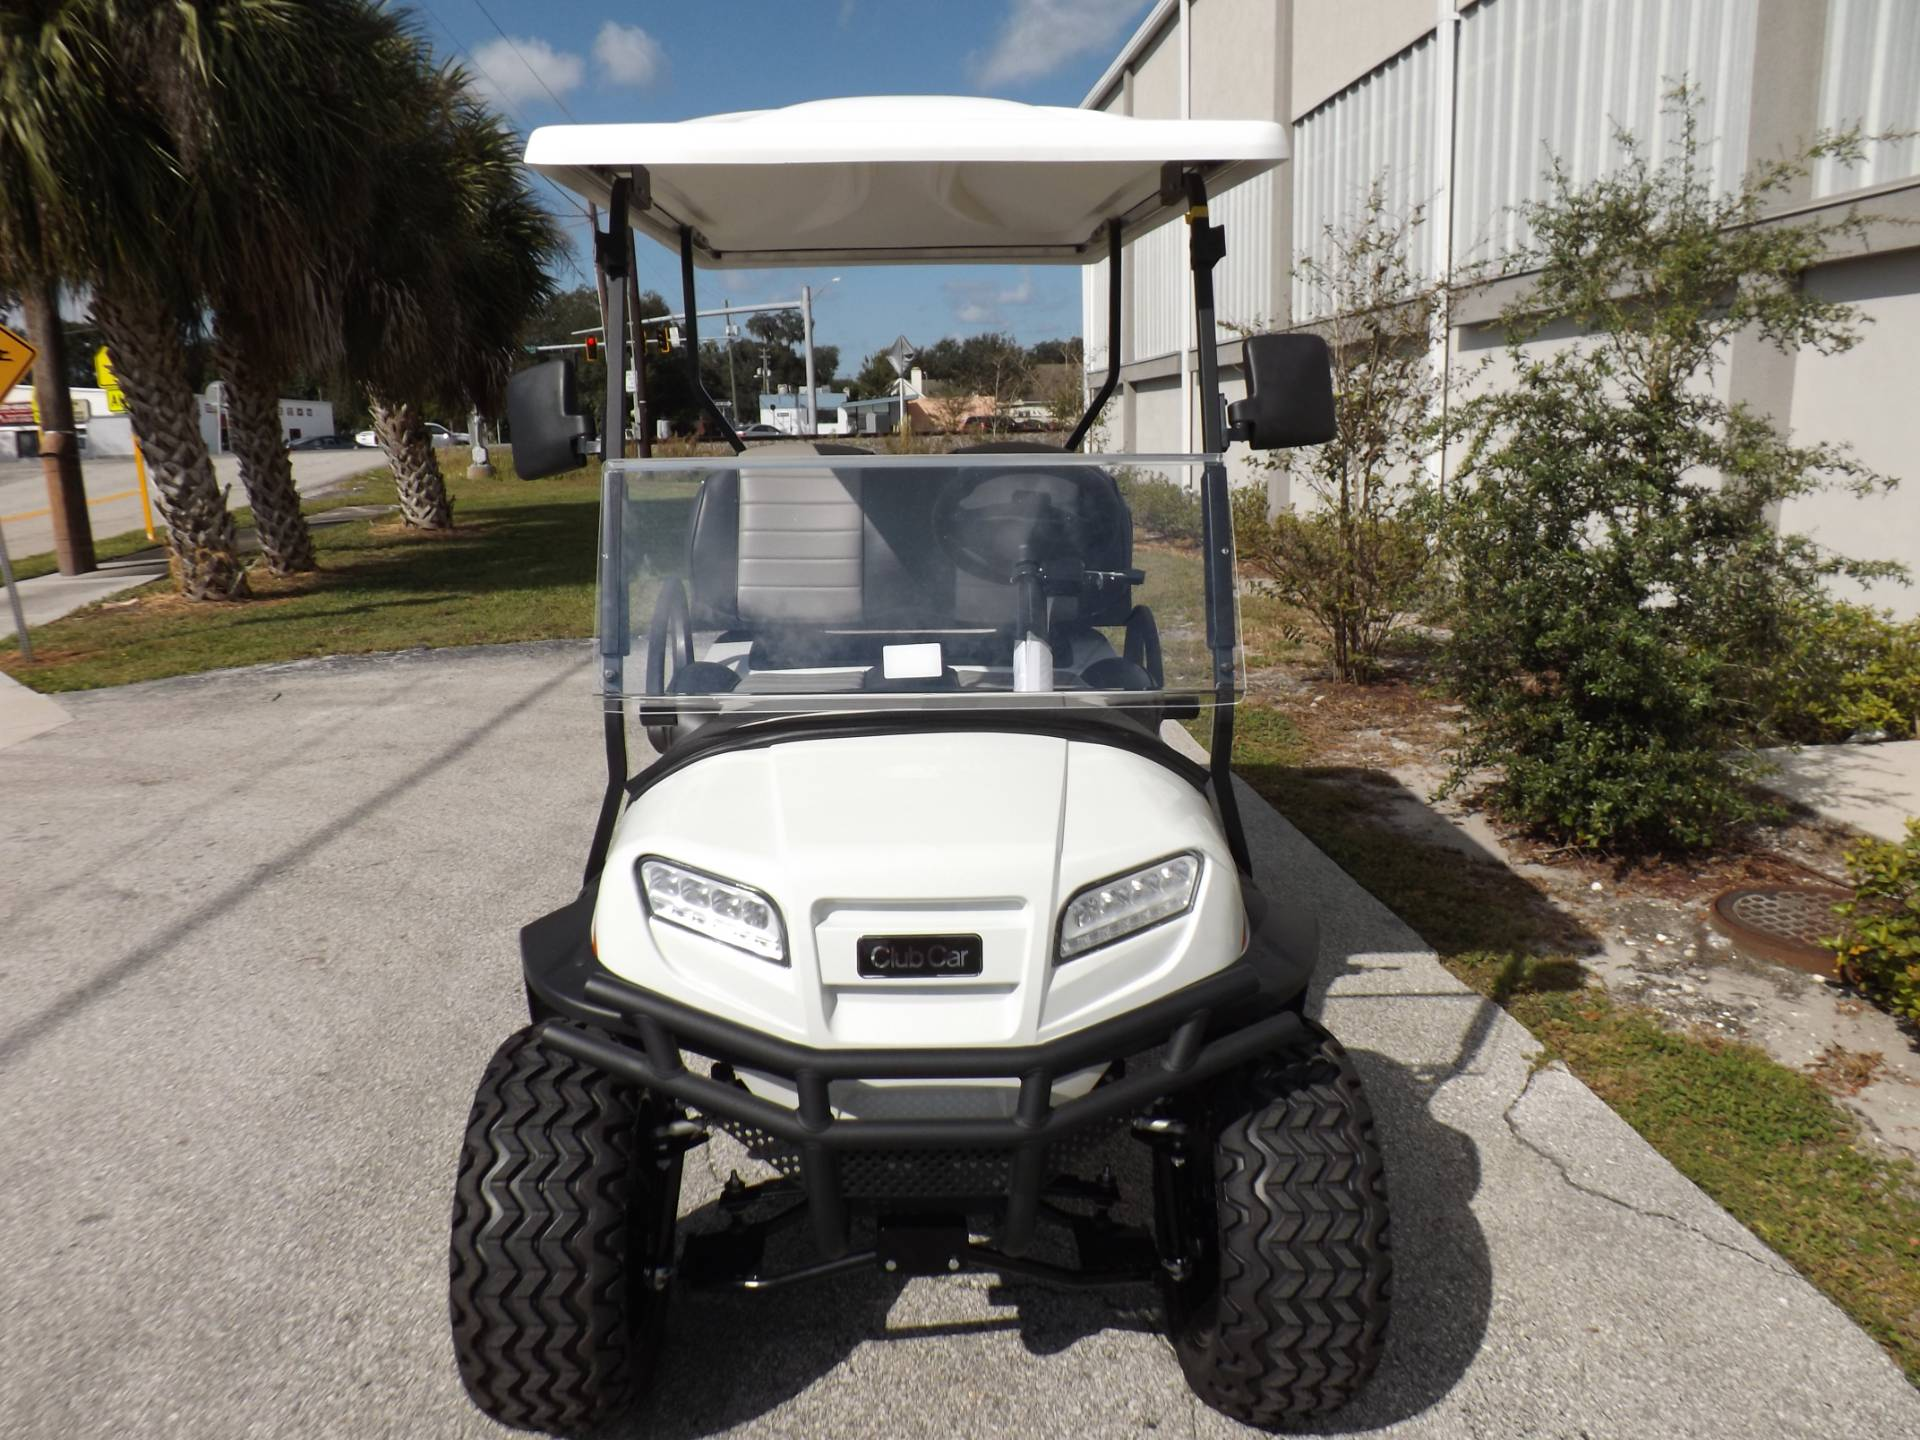 2021 Club Car Onward Lifted 4 Passenger Electric in Lakeland, Florida - Photo 2